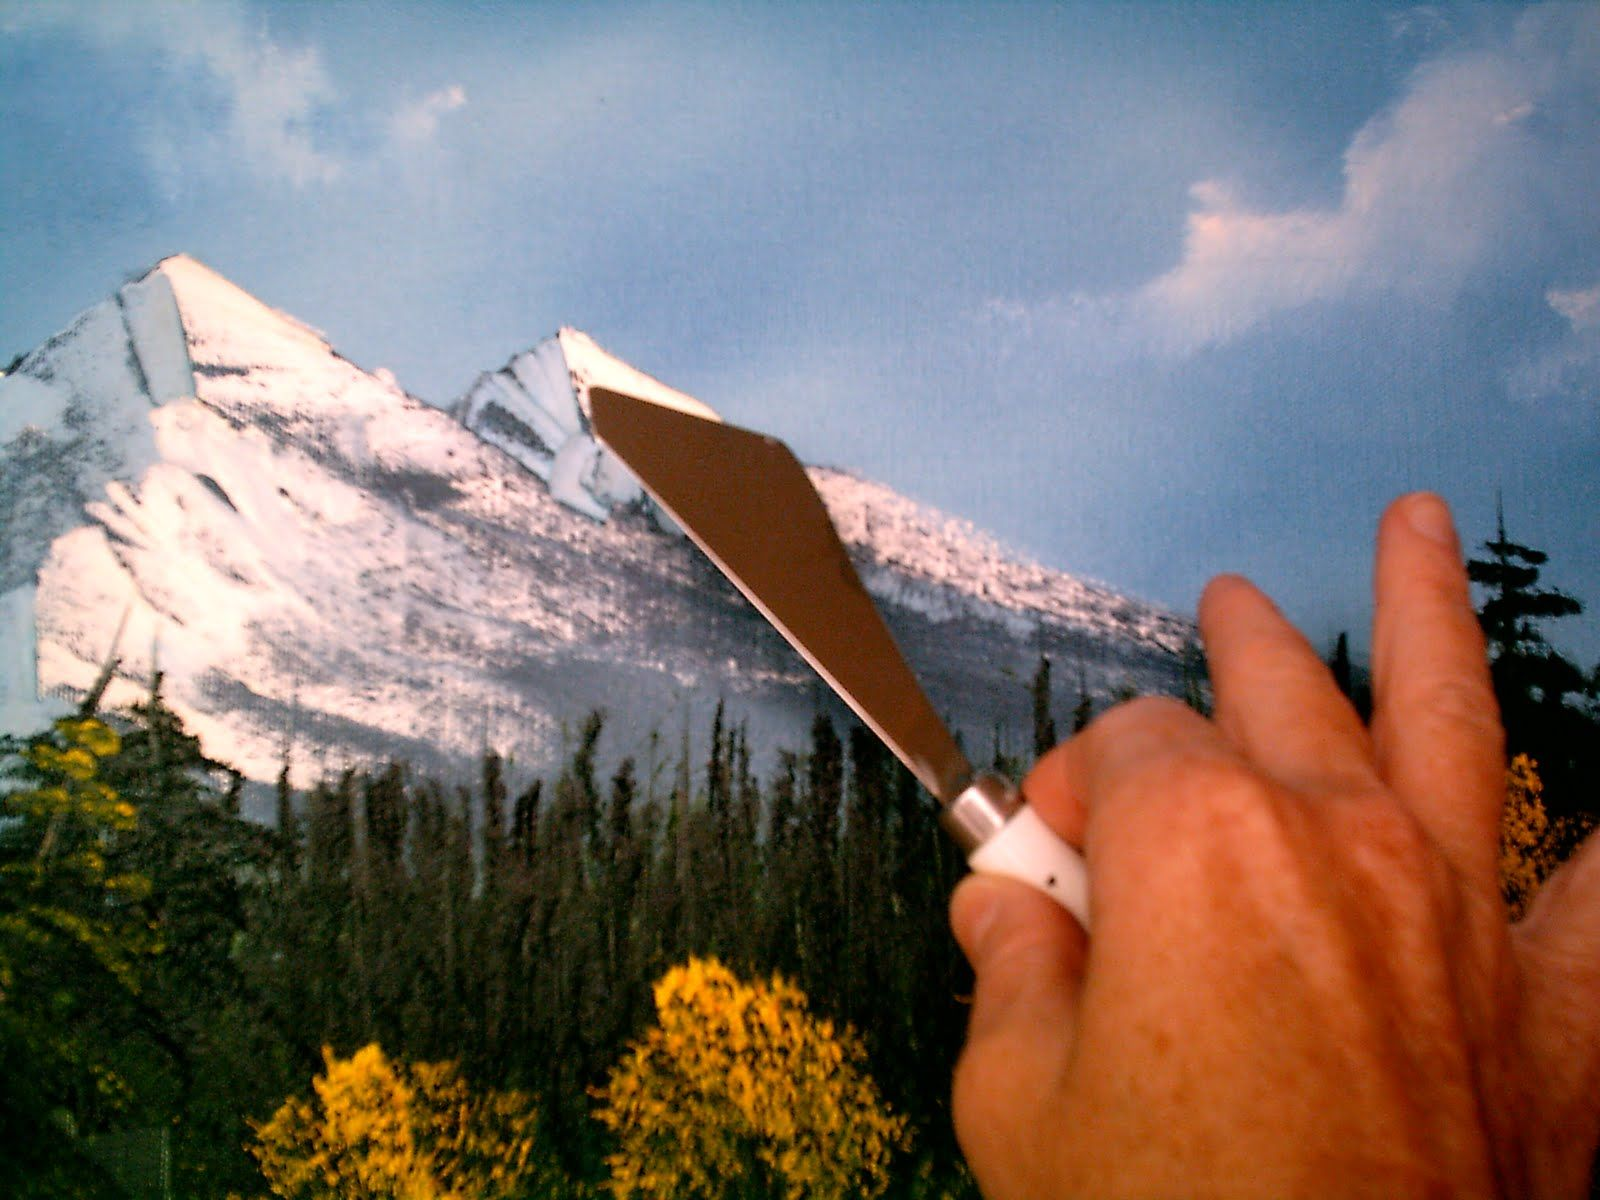 bob ross painting techniques using the bob ross painting knife for mountain snow art 9 bob. Black Bedroom Furniture Sets. Home Design Ideas